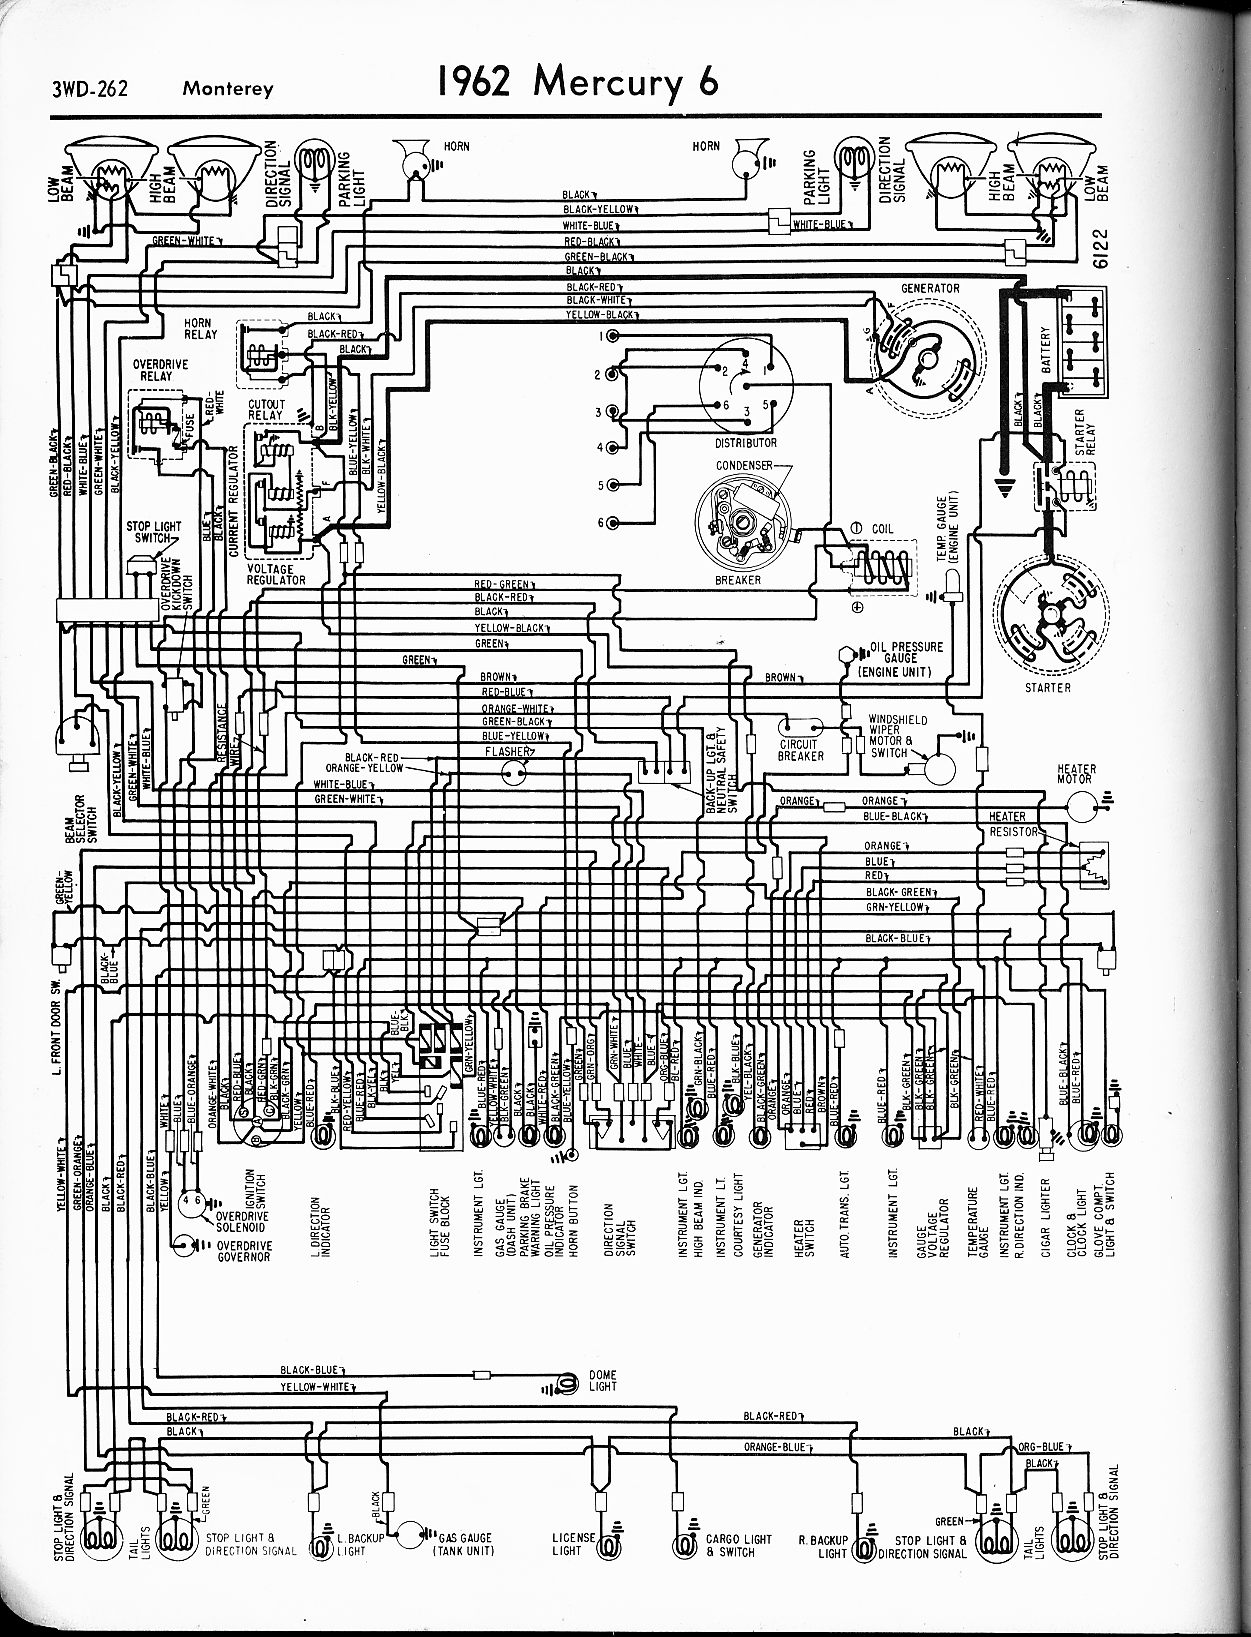 Fuse Box Wiring Diagram 1966 | Wiring Diagram  Camaro Fuse Box Diagram on camaro strut diagram, camaro transmission diagram, camaro emergency brake diagram, camaro steering wheel, camaro fuel rail diagram, camaro radiator diagram, camaro 4x4, camaro horn diagram, camaro wiring, camaro interior, camaro exhaust manifold diagram, camaro speedometer, 1999 explorer fuse diagram, camaro brake line diagram, camaro fuse box dimensions, camaro engine, camaro rocker panel diagram, camaro hood, camaro starter diagram, camaro steering column diagram,